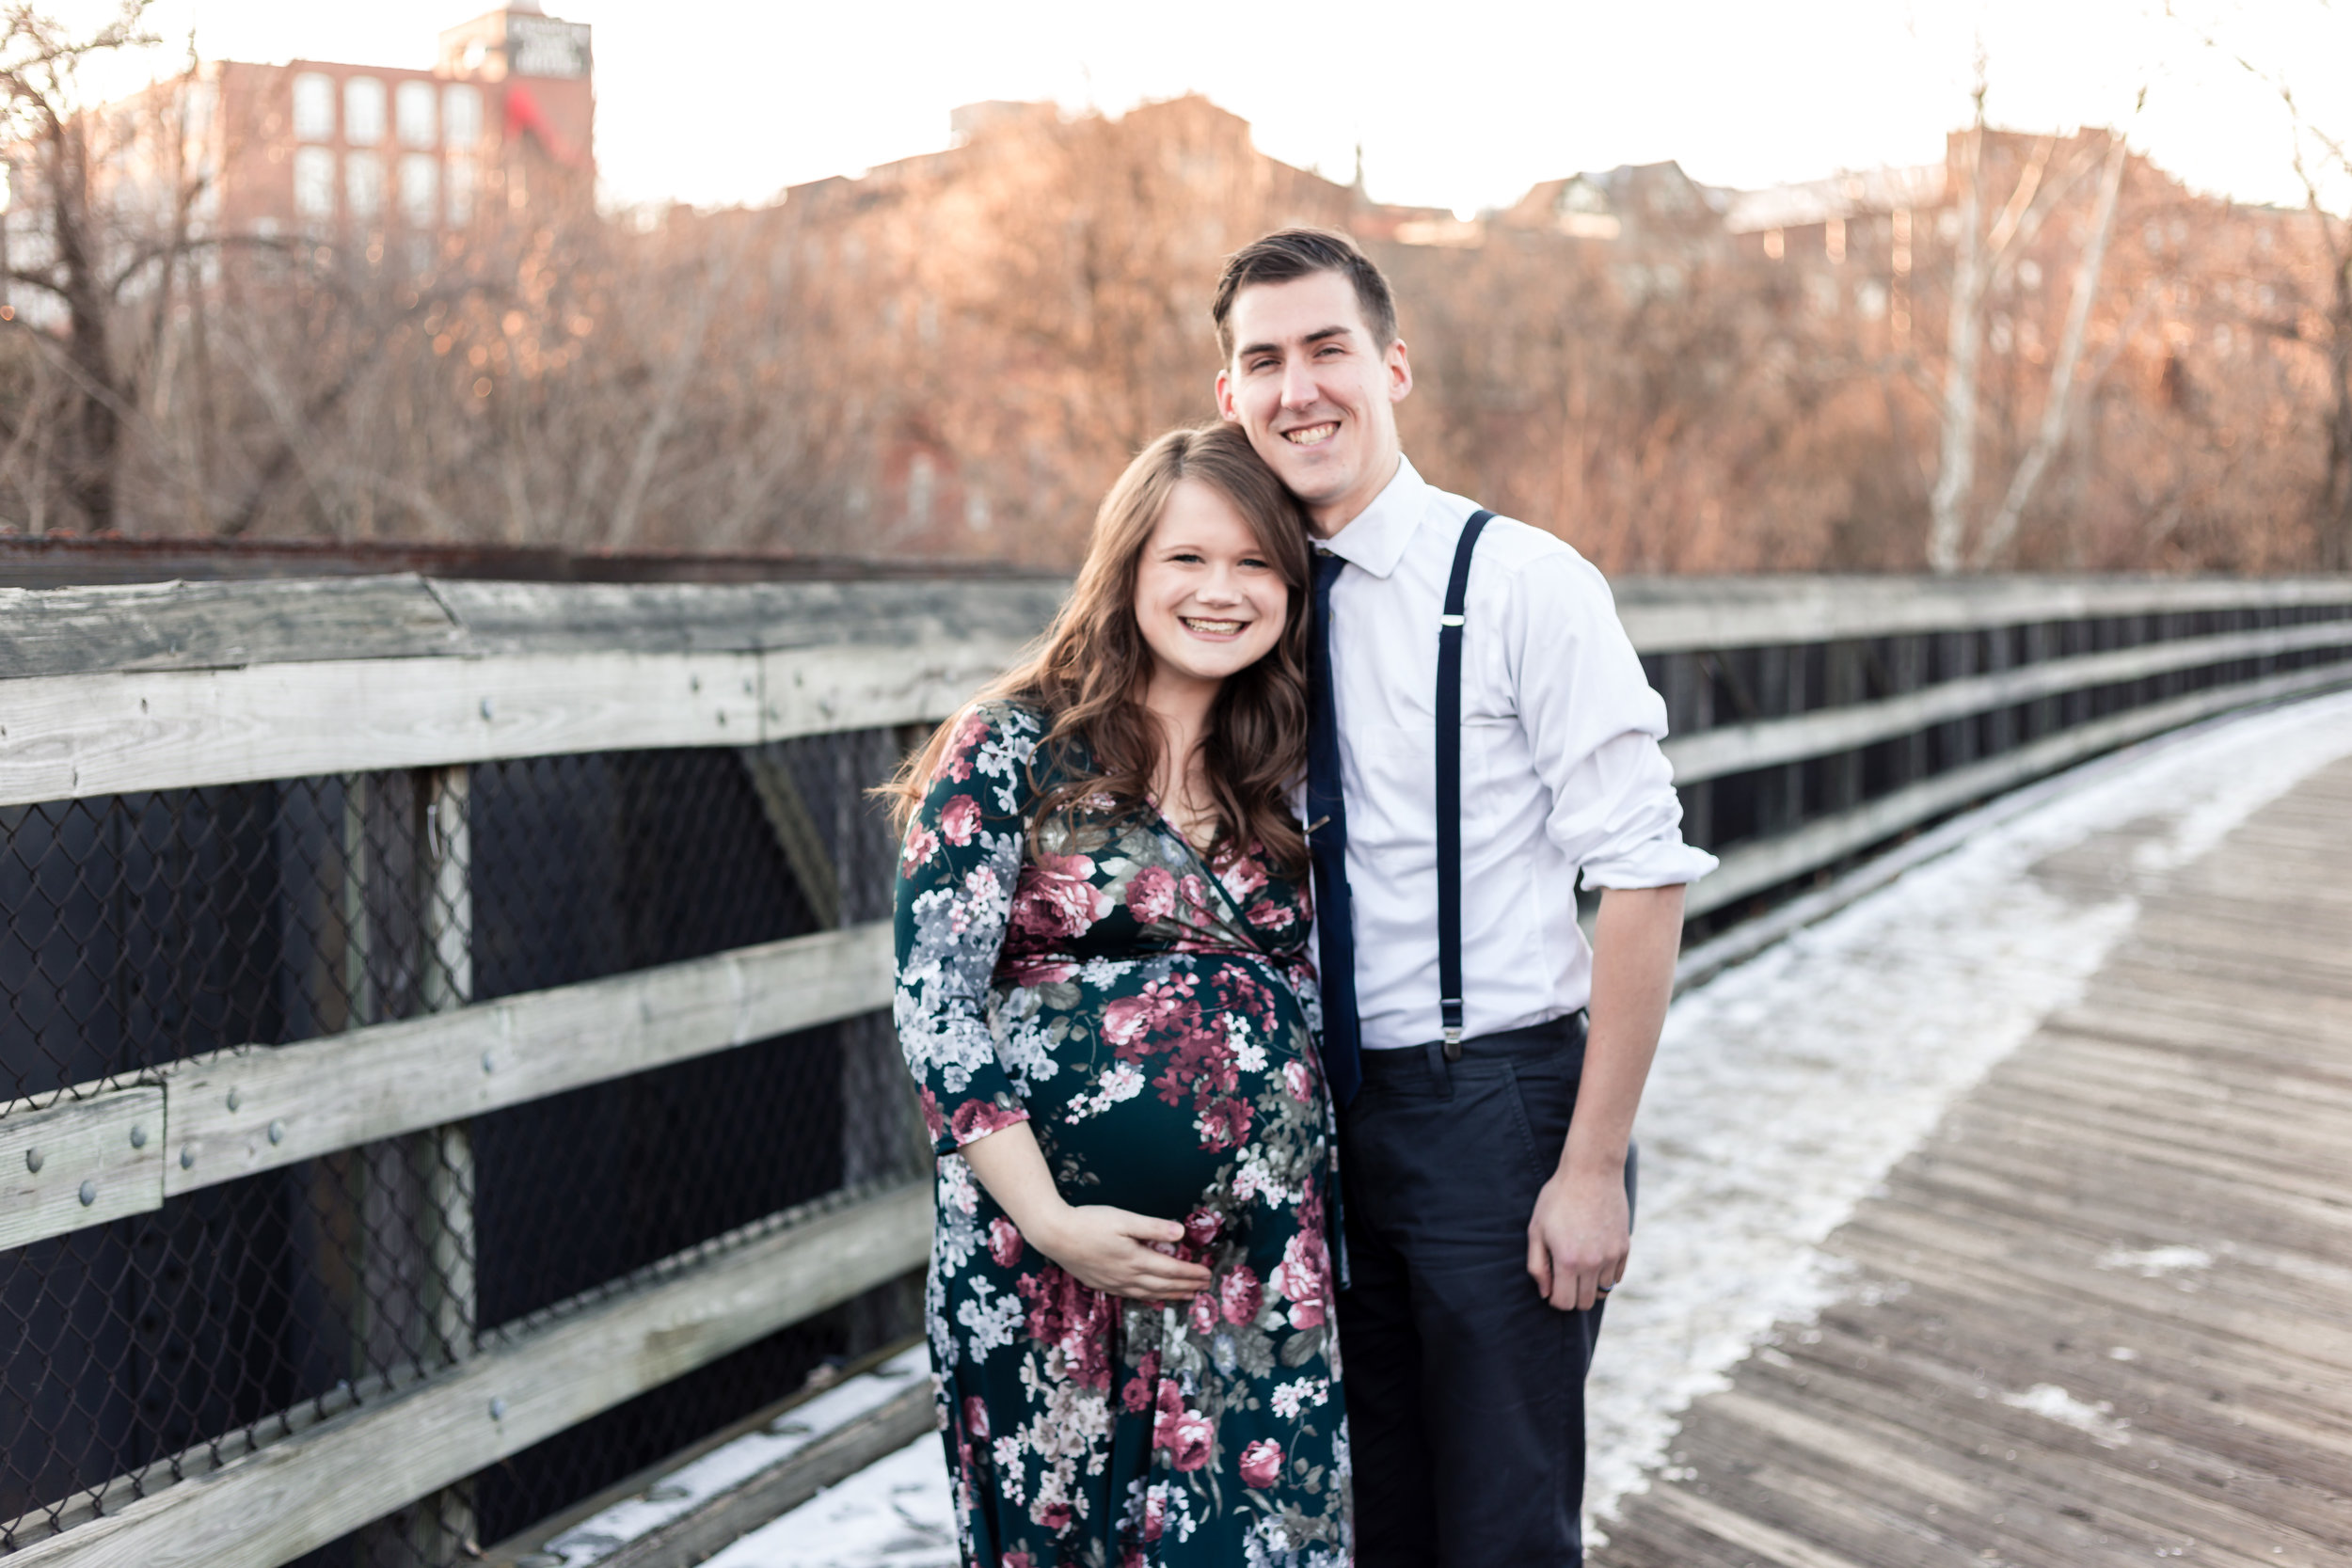 Couple poses together on bridge in downtown Lynchburg while mother cradles pregnant belly.